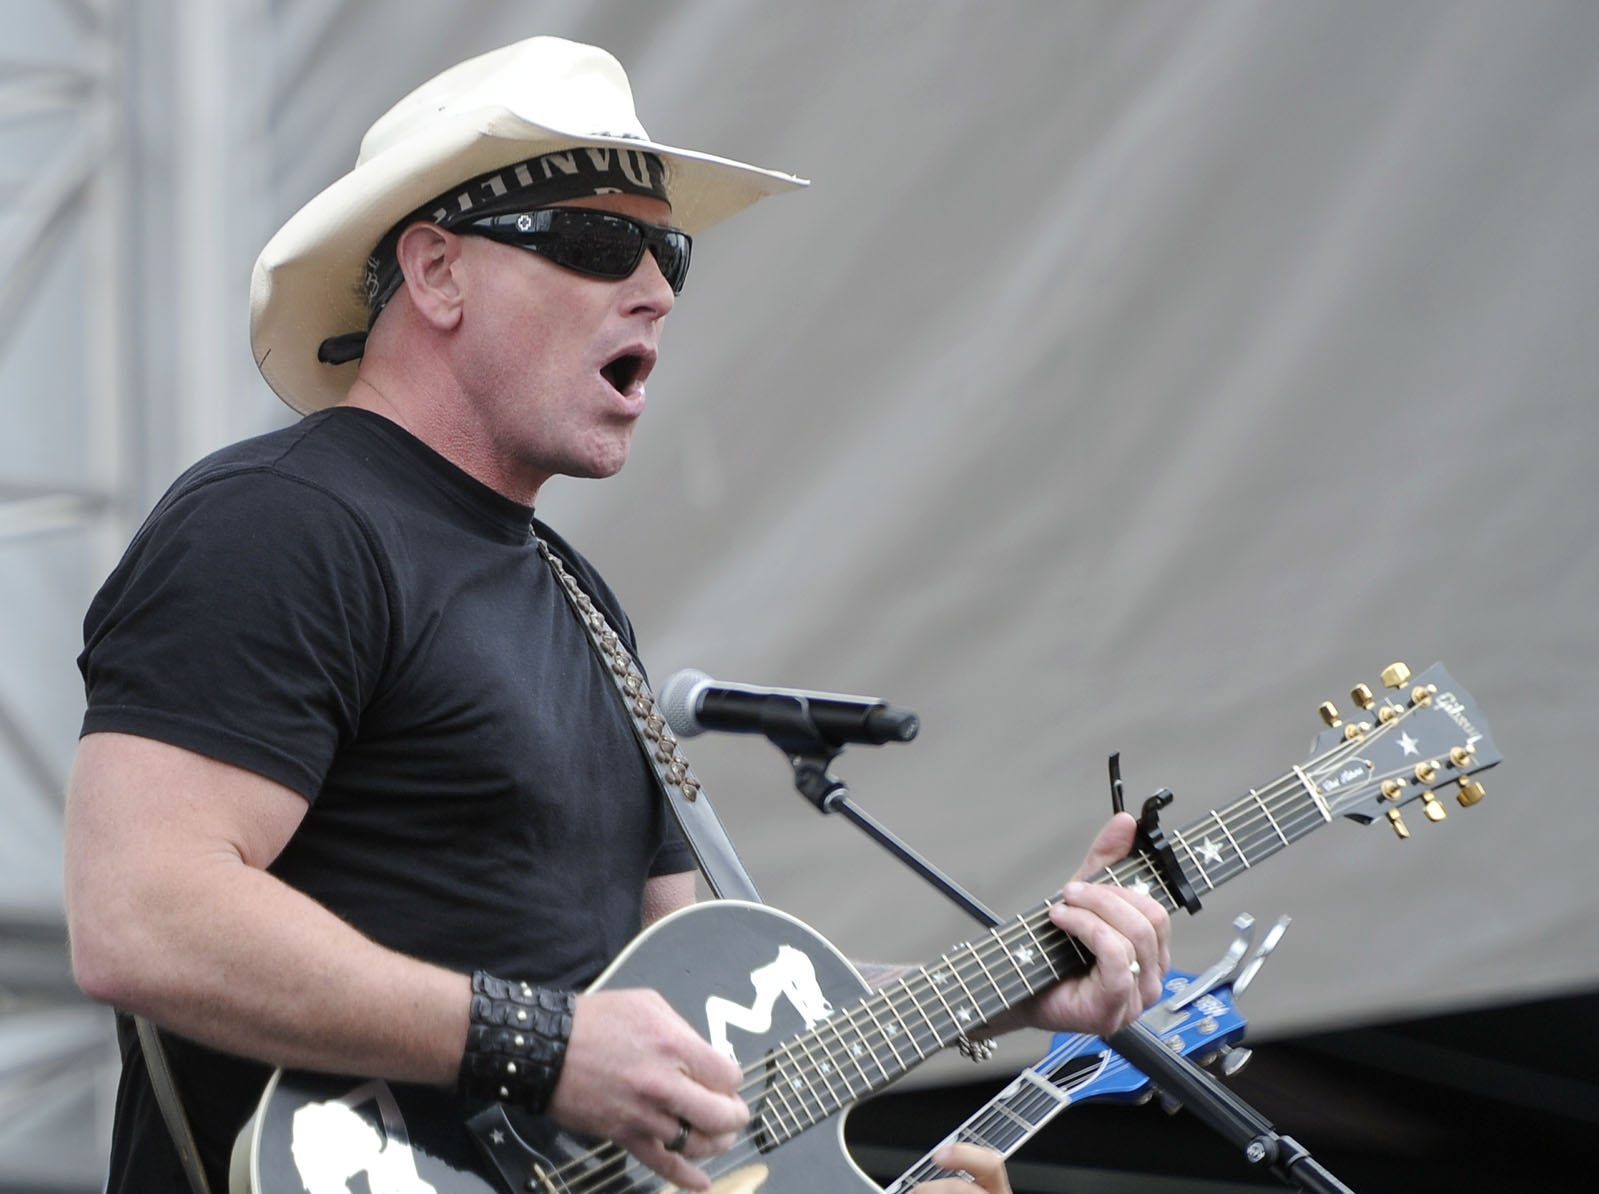 Keith Anderson is scheduled to play the Budweiser Forever Country Stage at CMA Fest 2019.